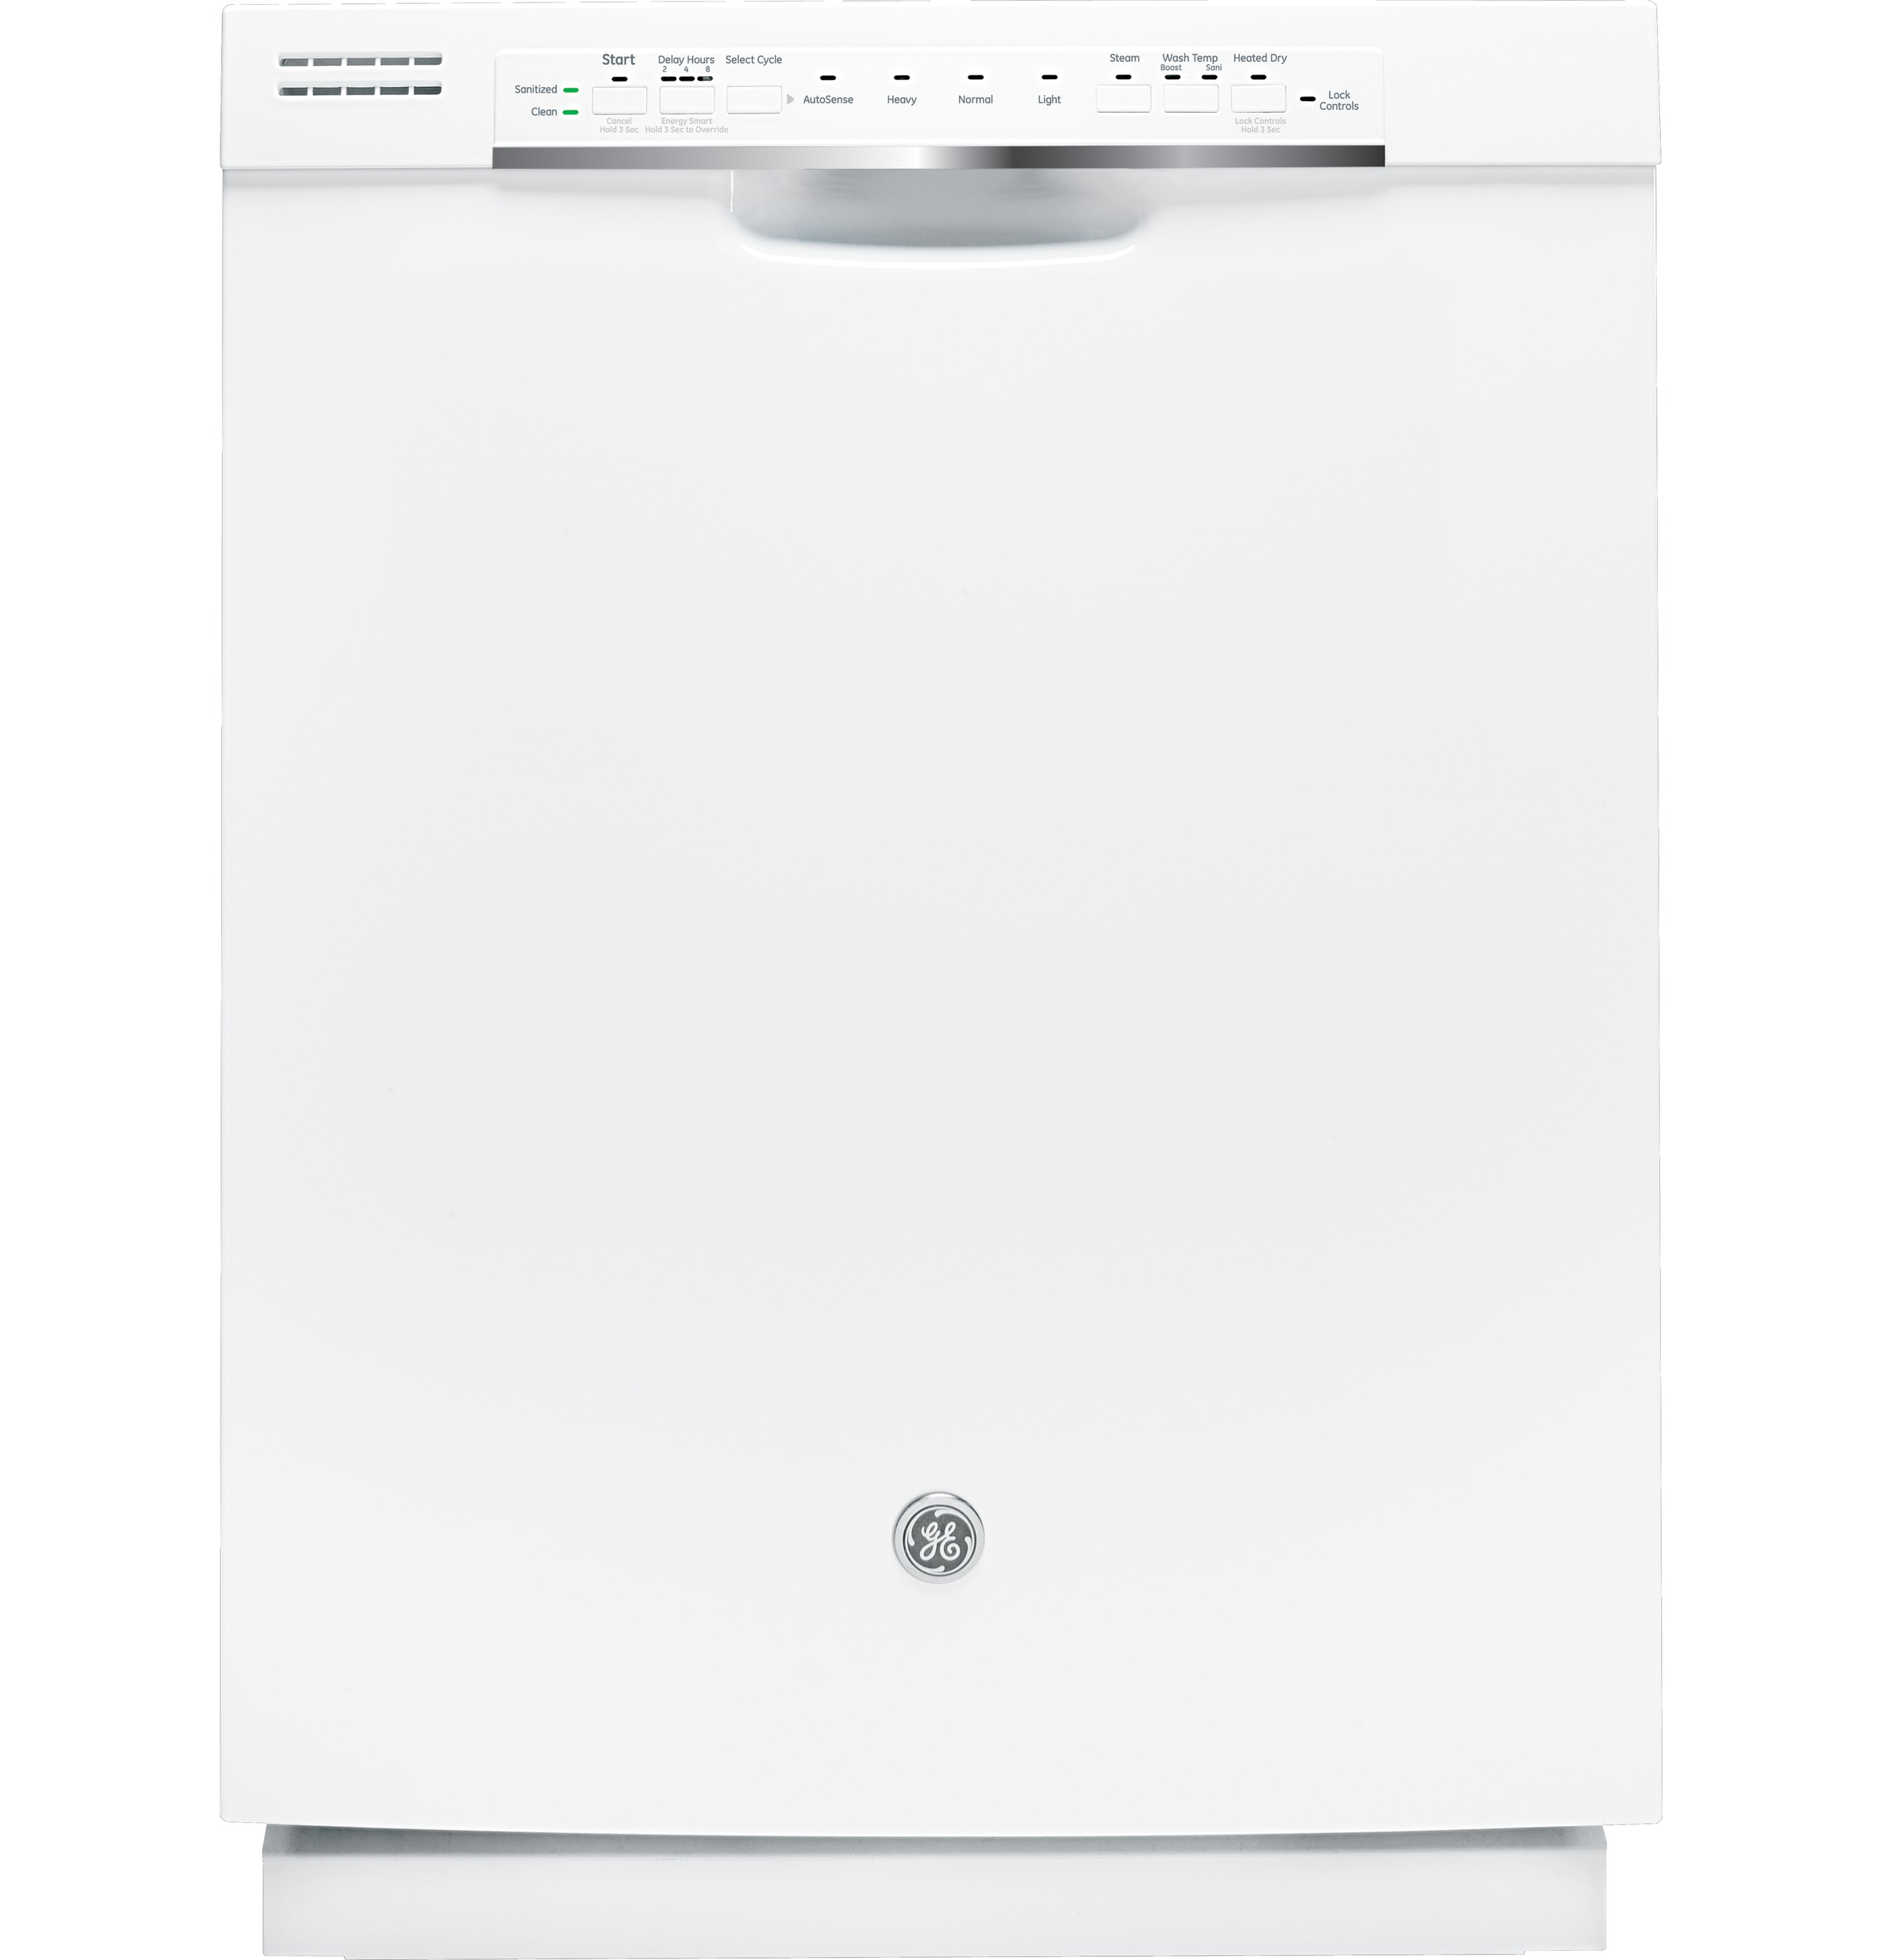 Ge Appliance Customer Service 800 Gear Stainless Steel Interior Dishwasher With Front Controls